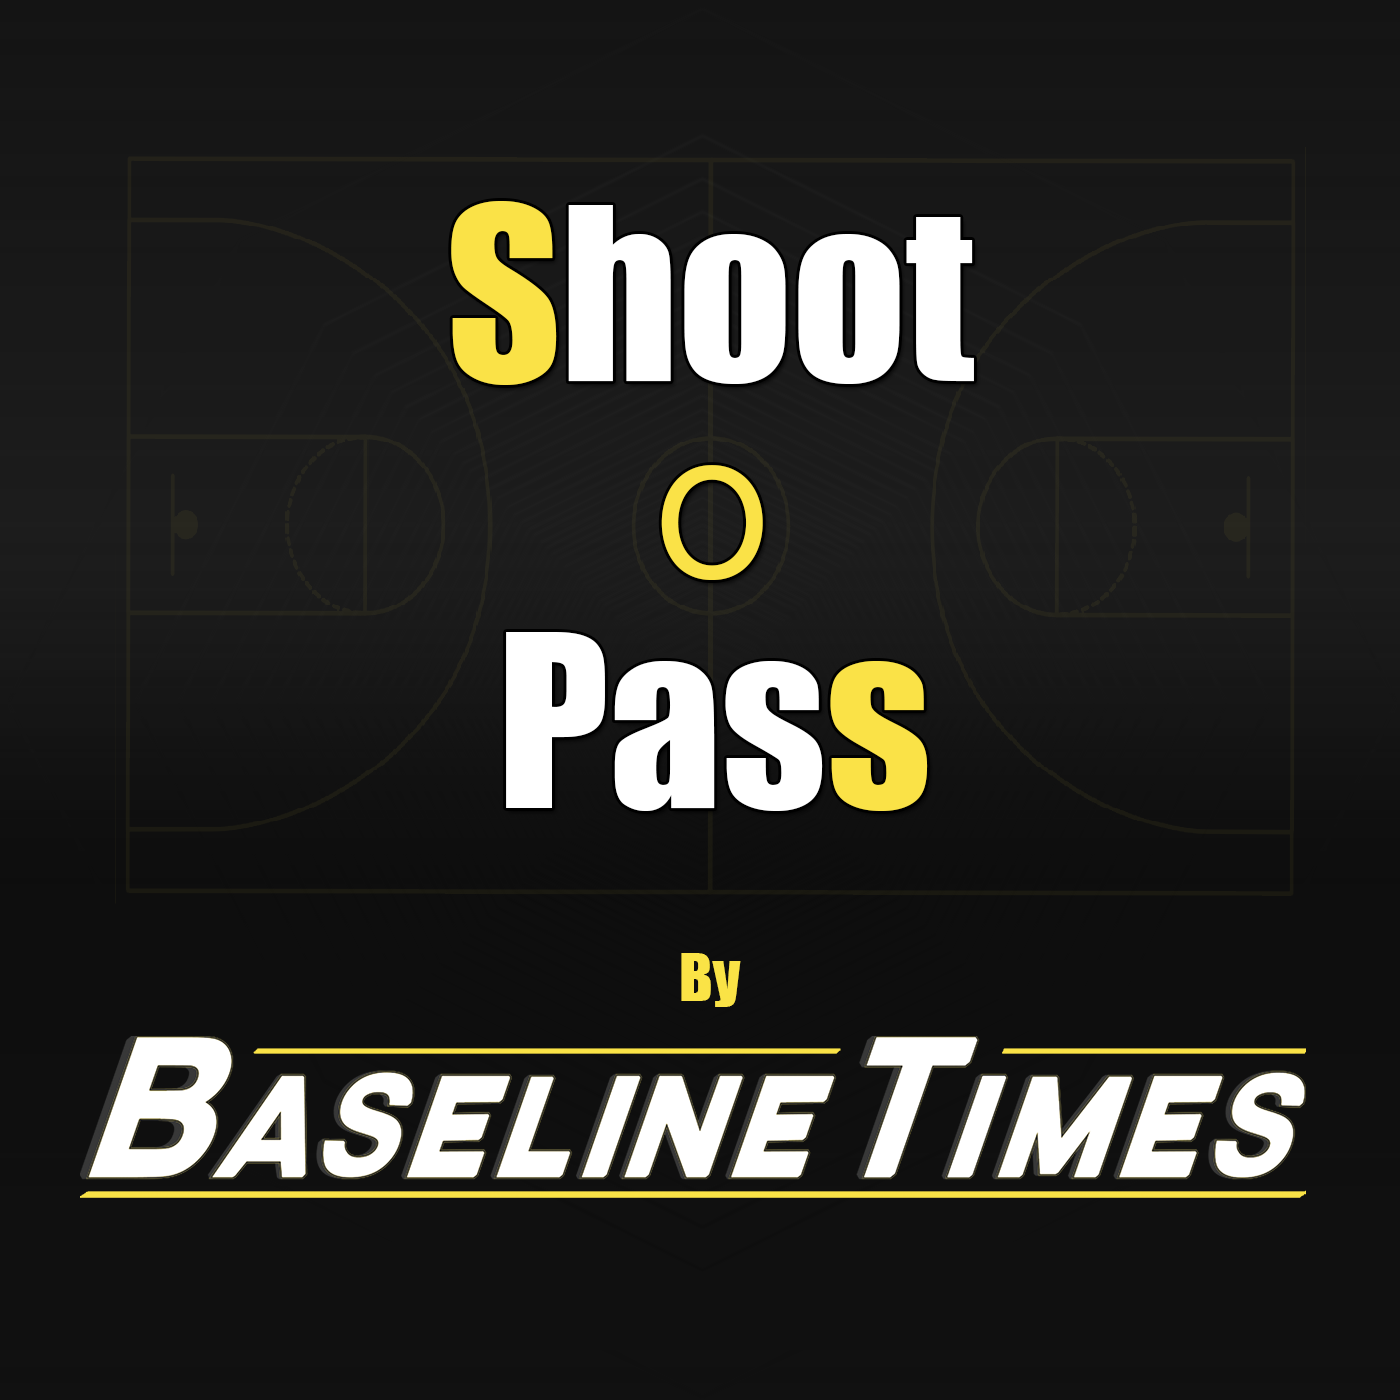 Shoot or Pass Podcast- Early NBA Surprises, OKC Meltdown, and LeBron Praise - Chevall Kanhai is joined by DeMario Jackson for another NBA exclusive episode! The duo talk about their early surprises, Oklahoma City Thunder's struggles, and DeMario praises Lebron for his fabulous year 15. Homage is paid to Kobe and some LaVar talk ensues.